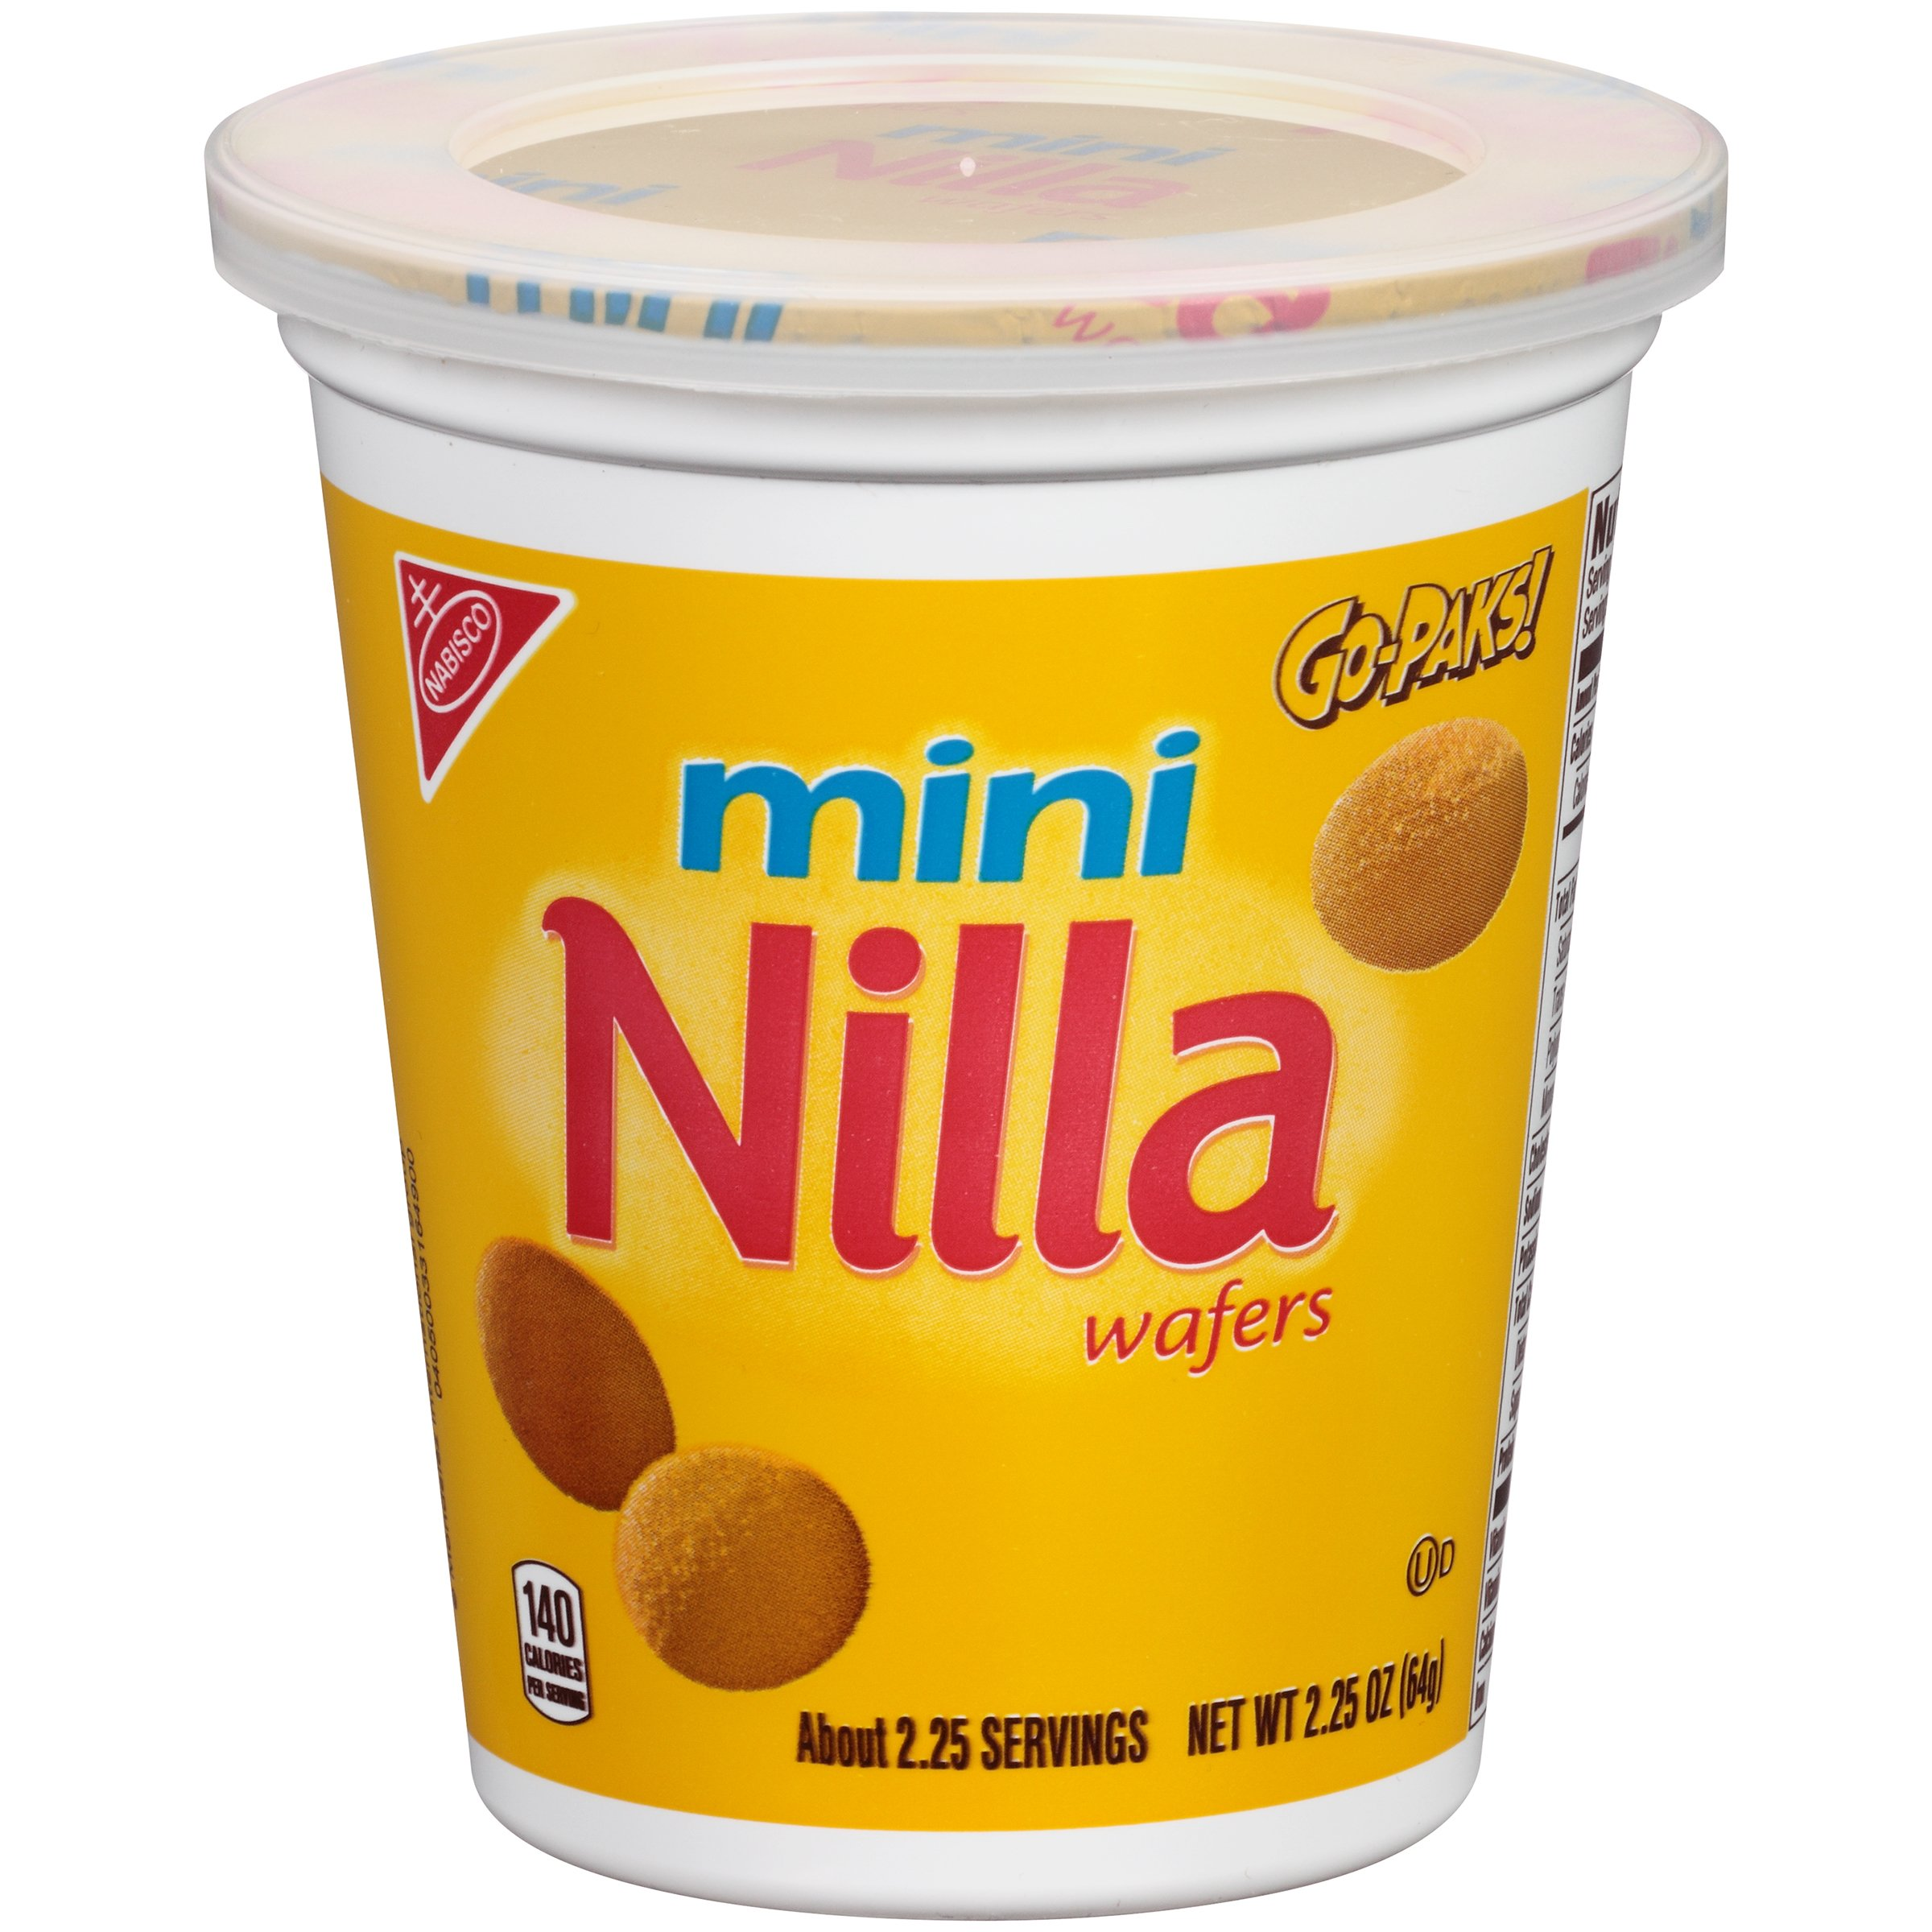 Nilla Wafer Mini Cookies - Go-Pak, 2.25 Ounce, (Pack of 12) by Mini Nilla's